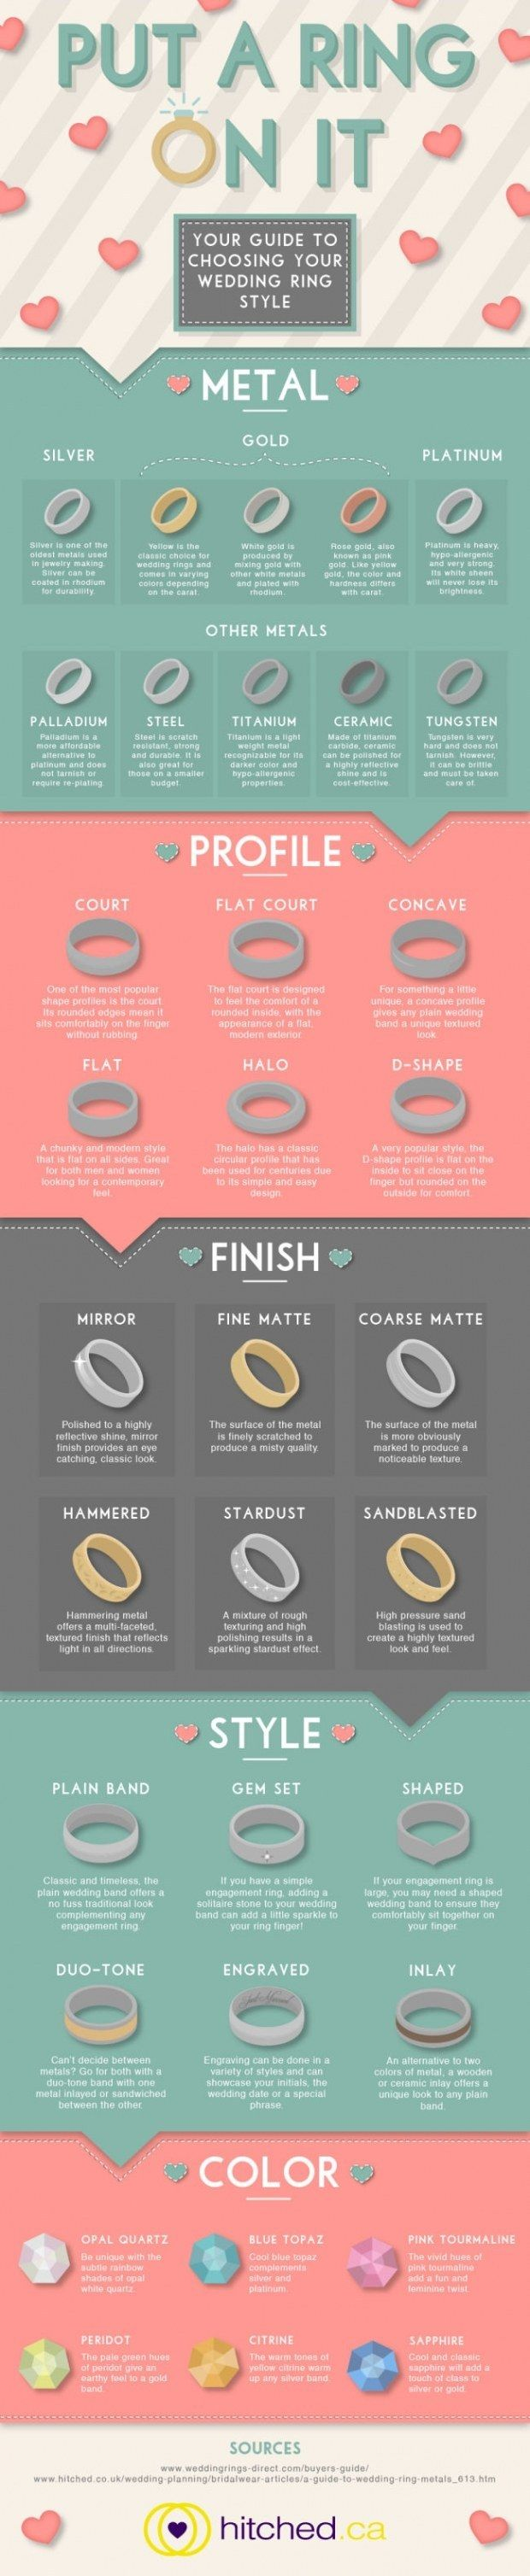 wedding ring guide deadpool wedding ring 17 Useful Wedding Cheat Sheets For Any Bride To Be